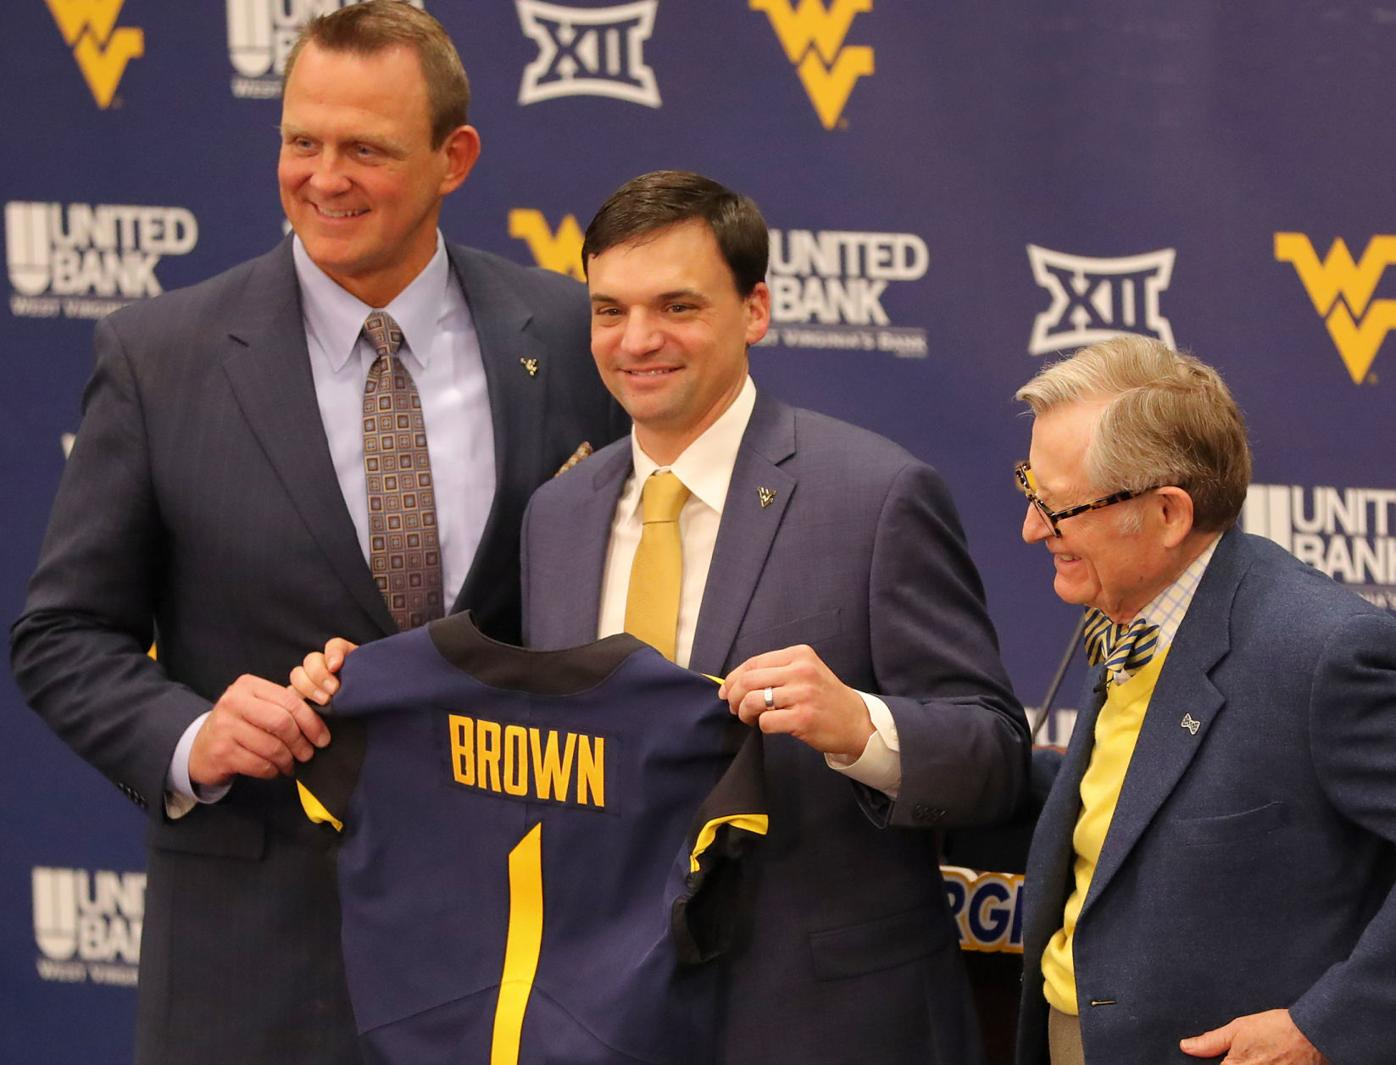 0110 Lyons and Gee present Neal Brown jersey copy.jpg